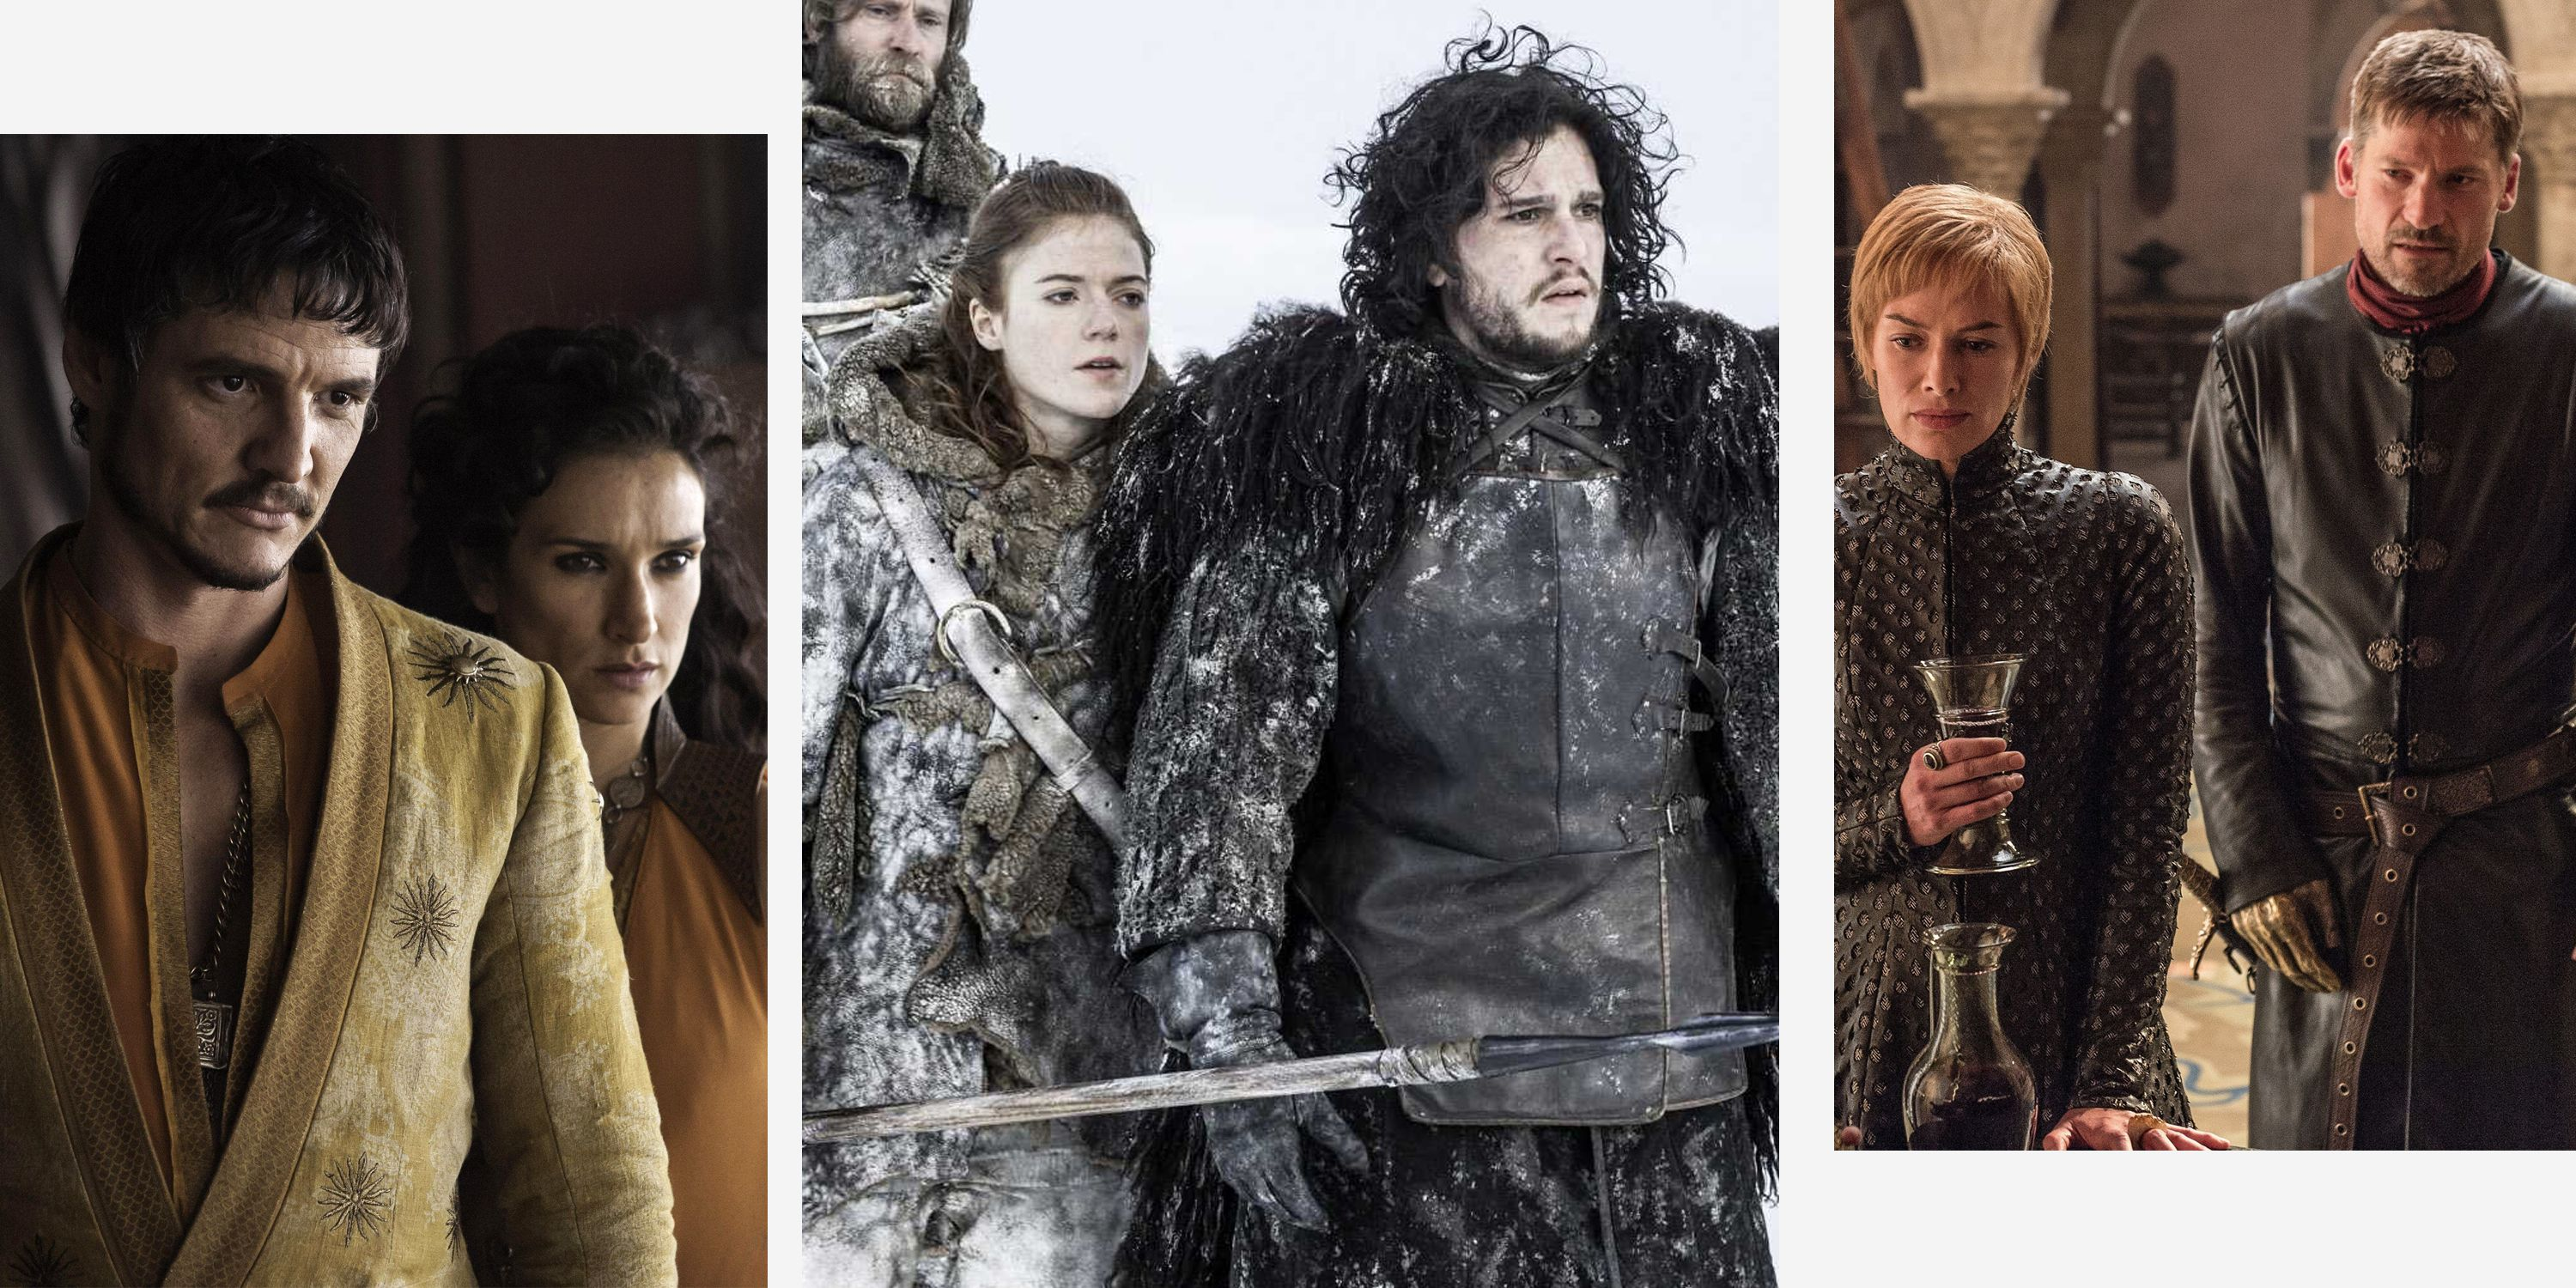 ca29f27852 28 Best & Worst 'Game of Thrones' Couples - GoT Relationships We'll Never  Forget